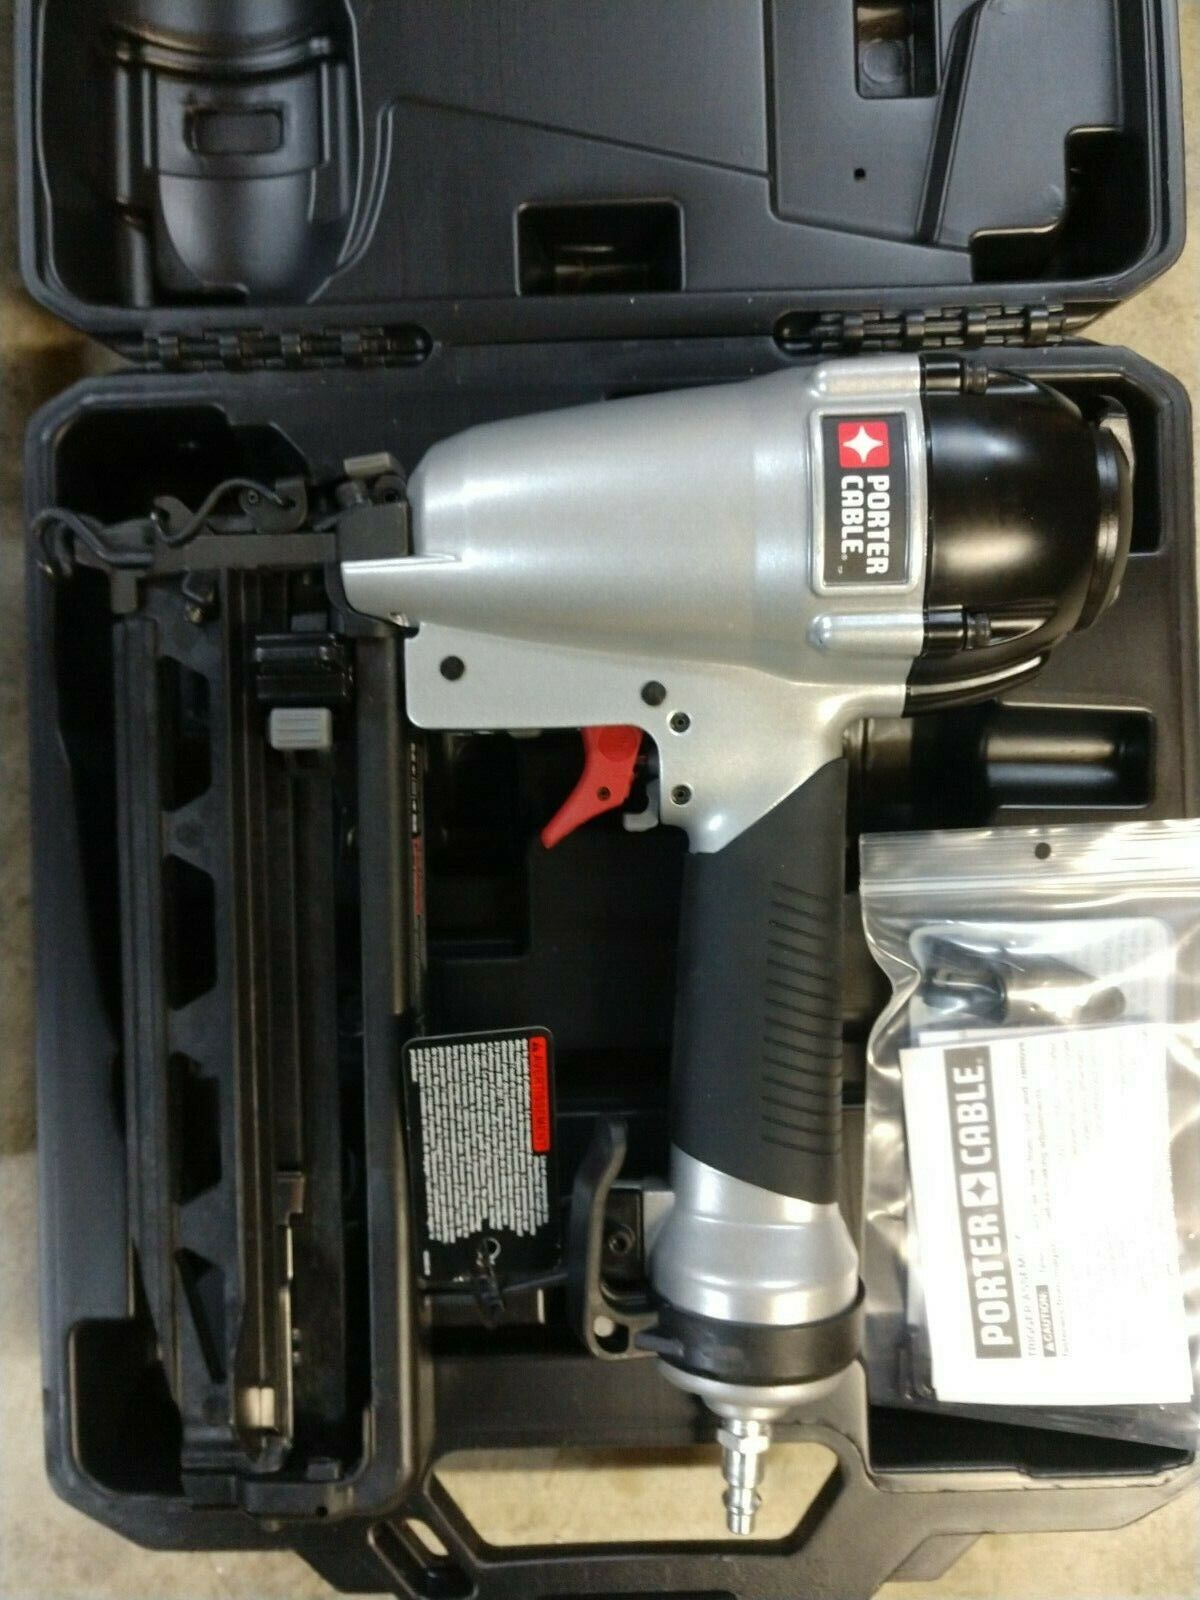 Porter Cable 16 -Gauge 2 1/2 Straight Finish Nailer Model# FN250C. Available Now for 79.99